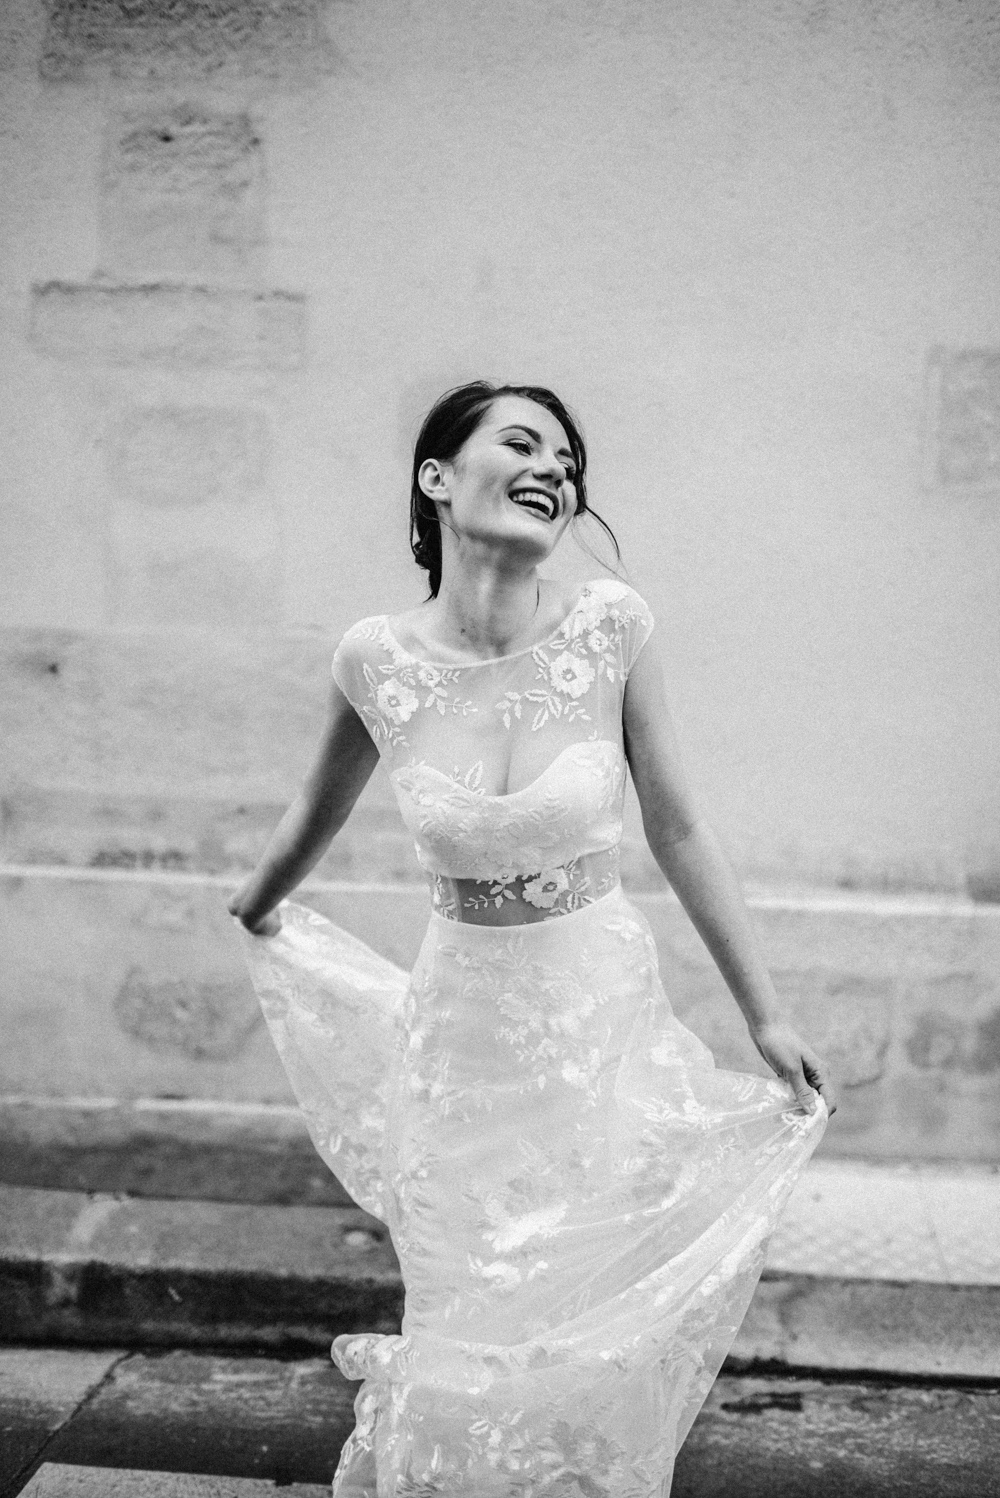 paris-bridal-editorial-lotts-inspire-styling-12.jpg